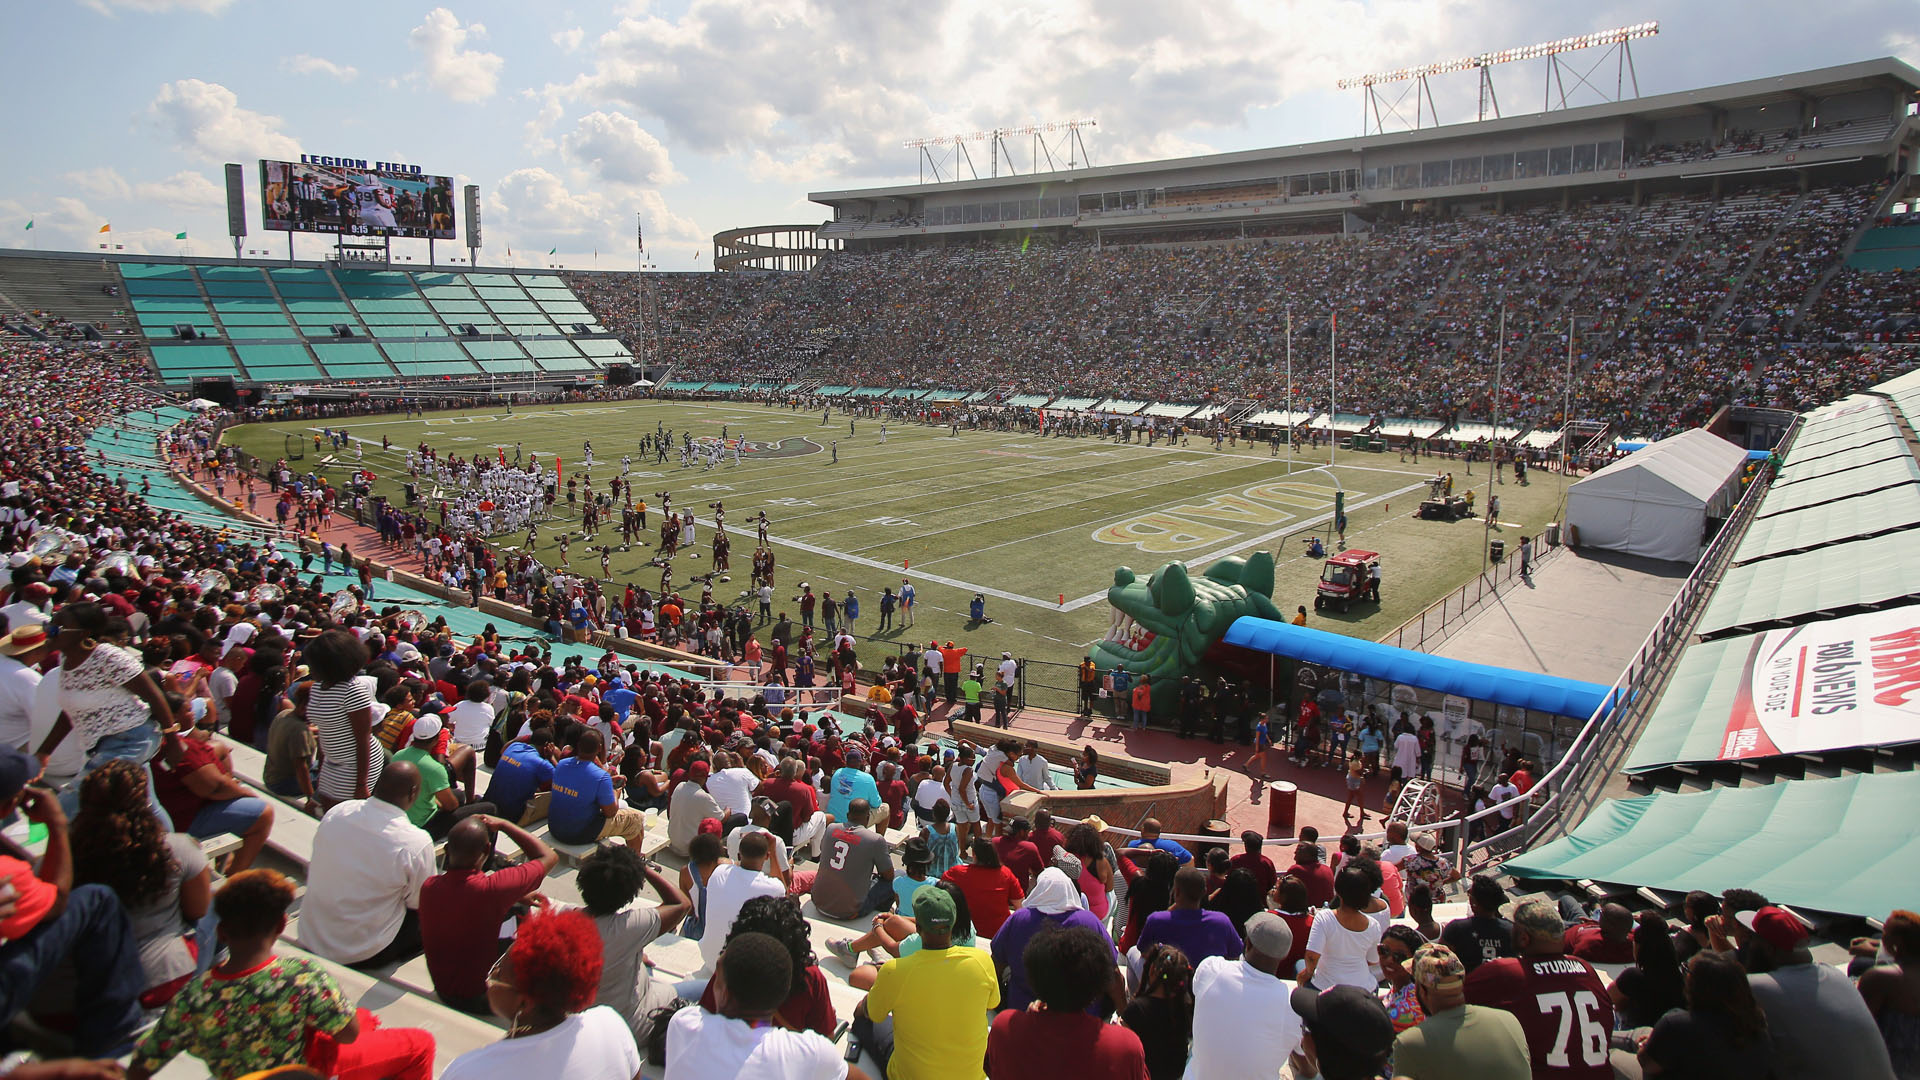 Legion field with crowd in the stands watching a football game.